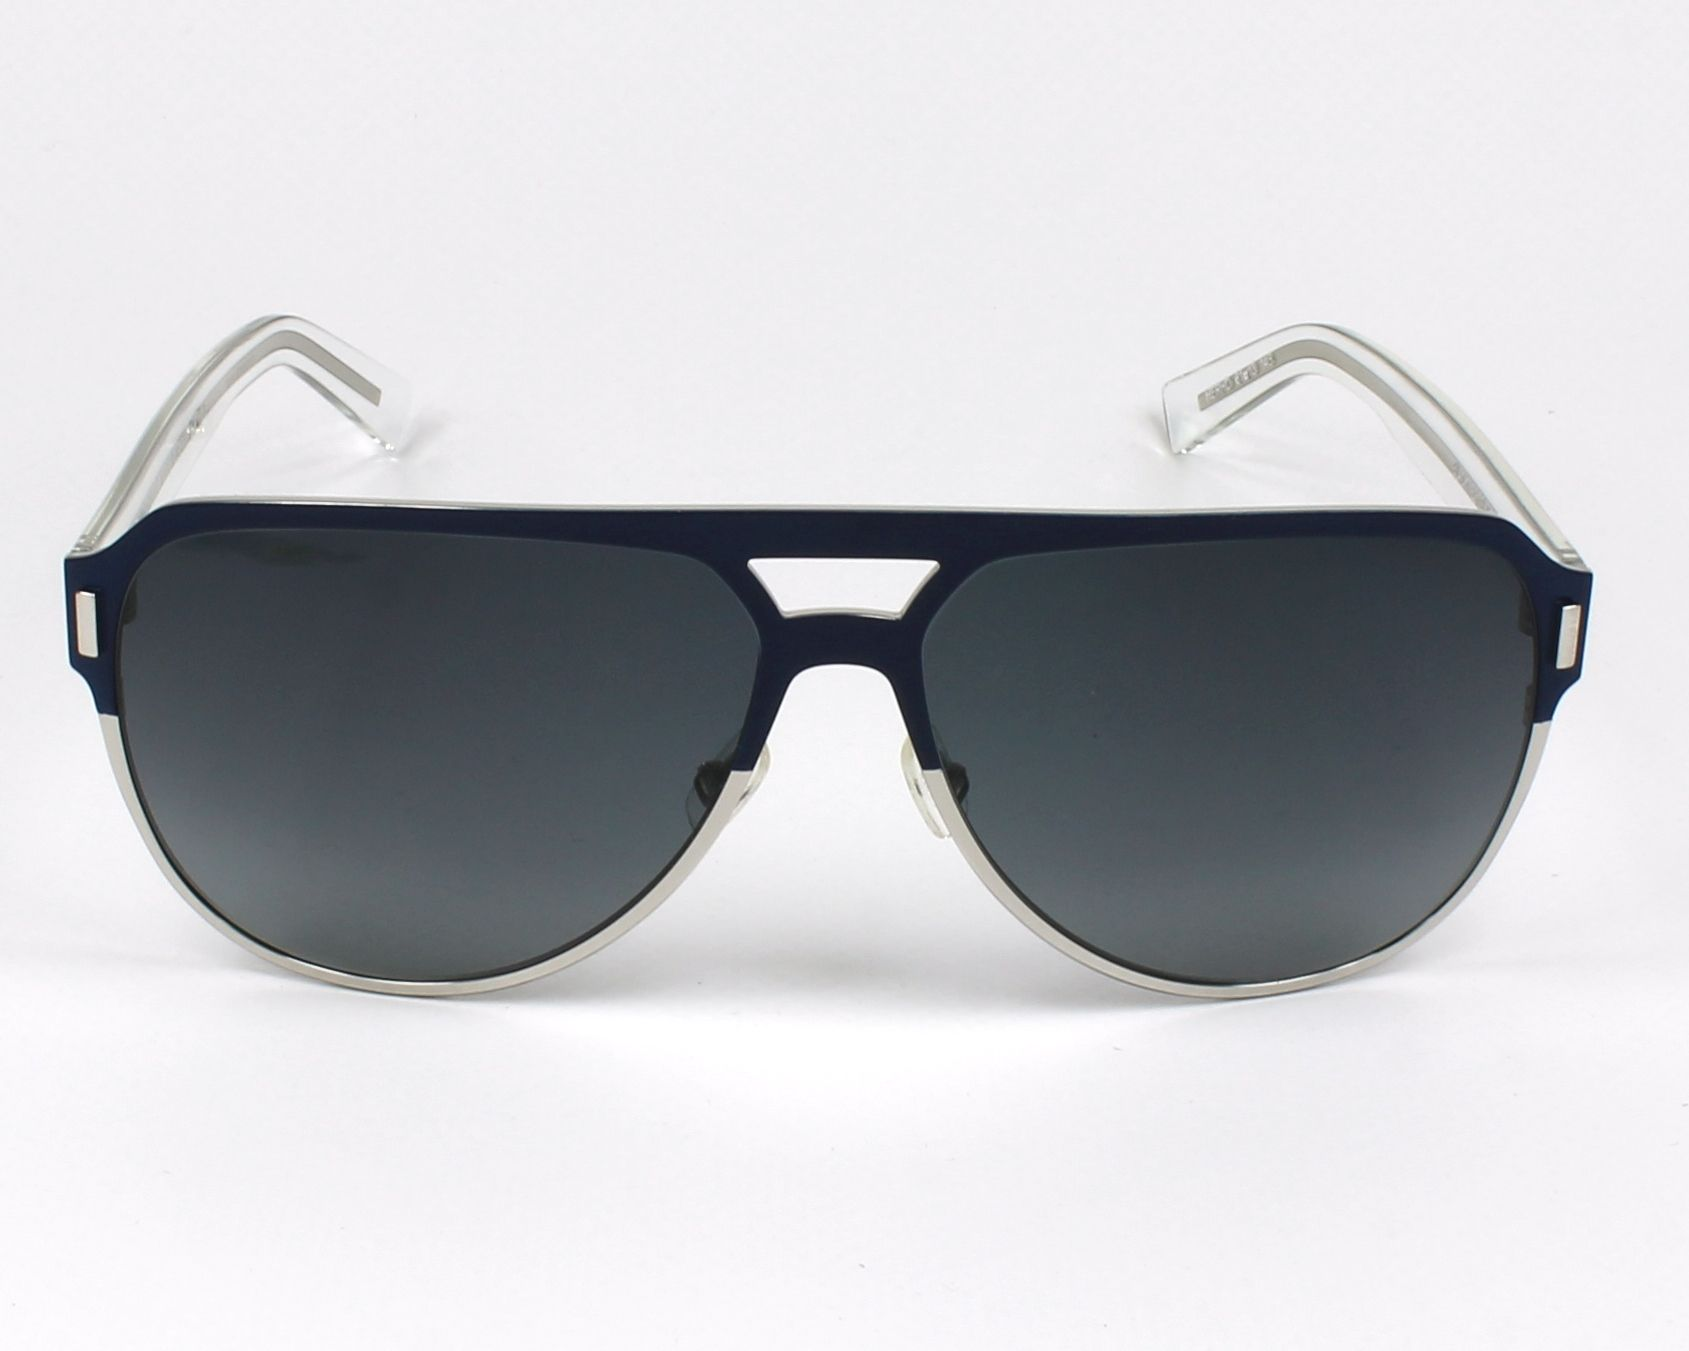 c15c75cded46 Dior Sunglasses For Her